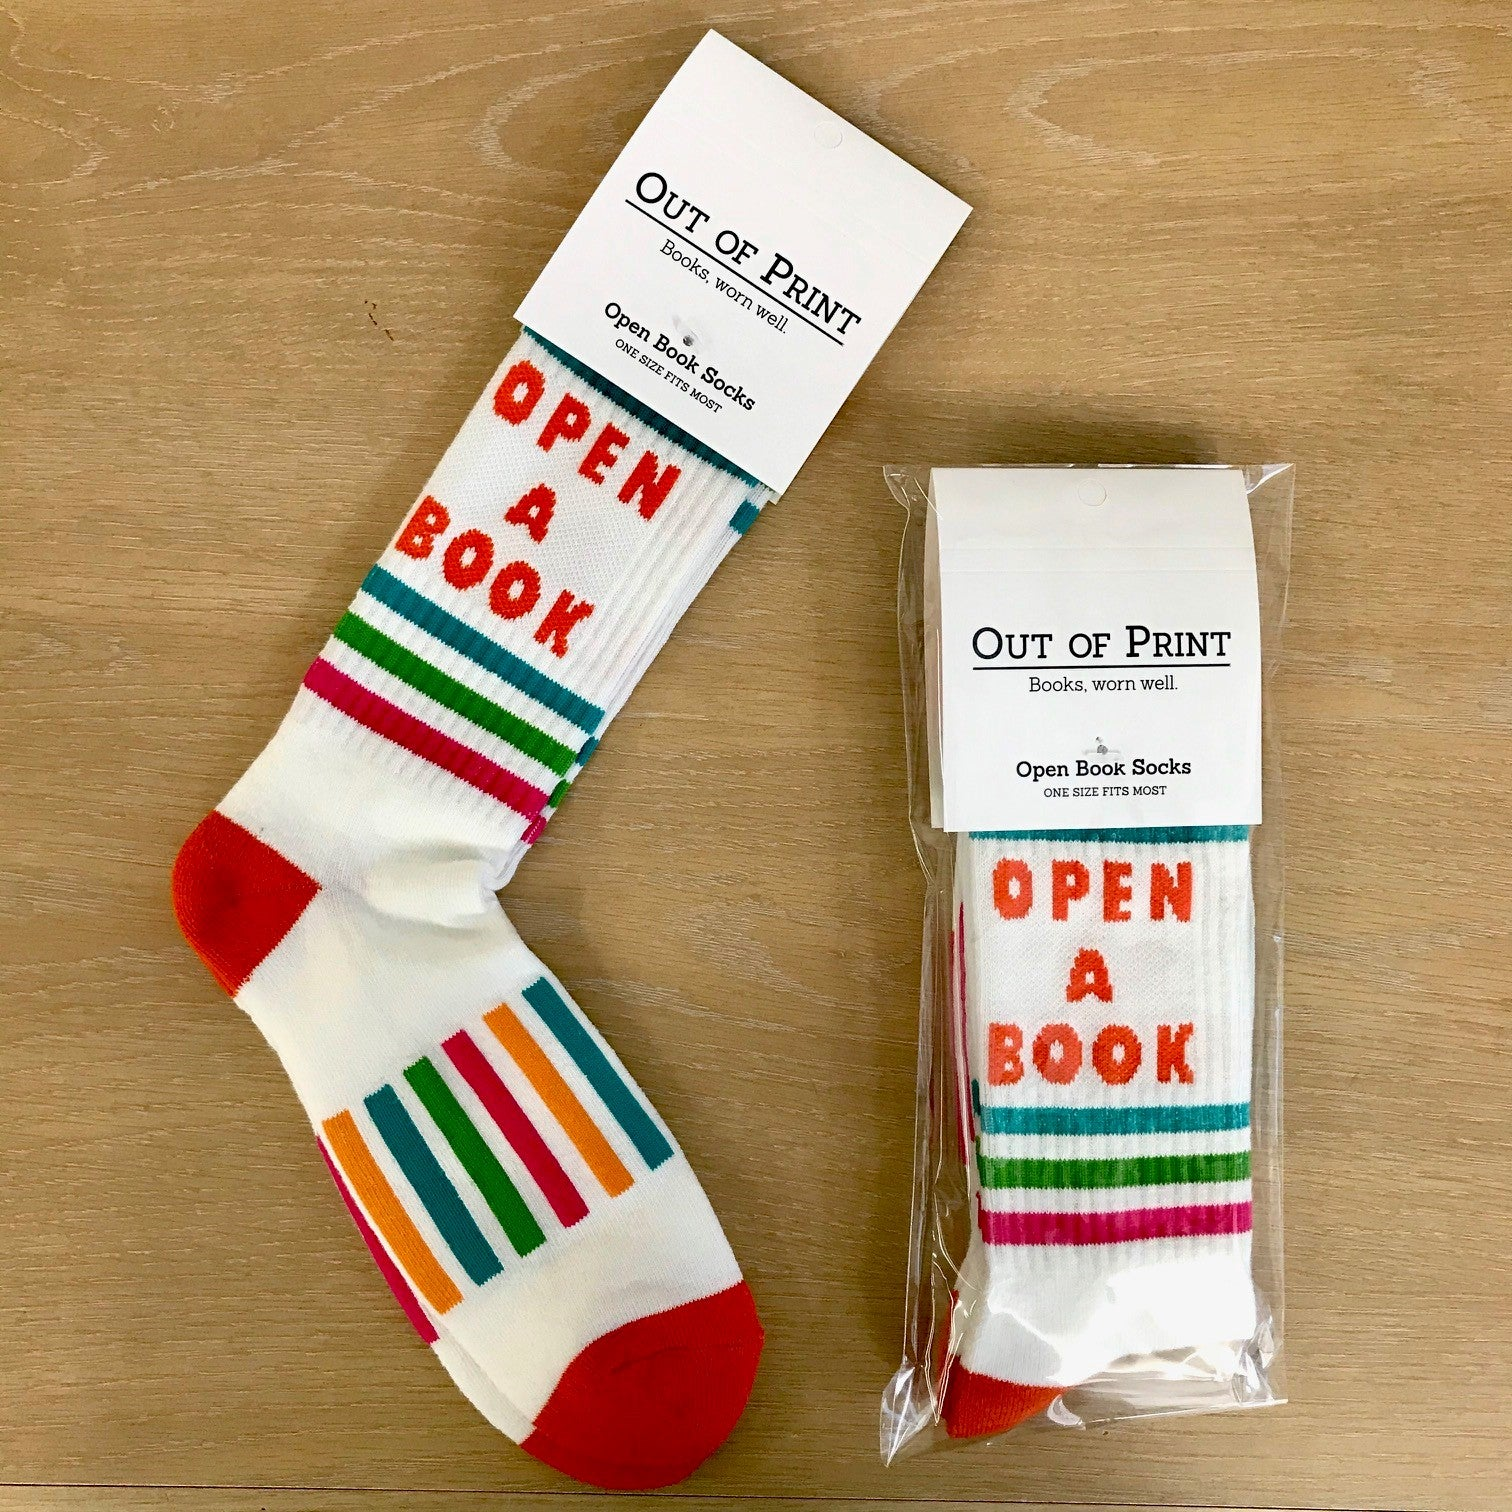 Open Book Socks (One size fits most)